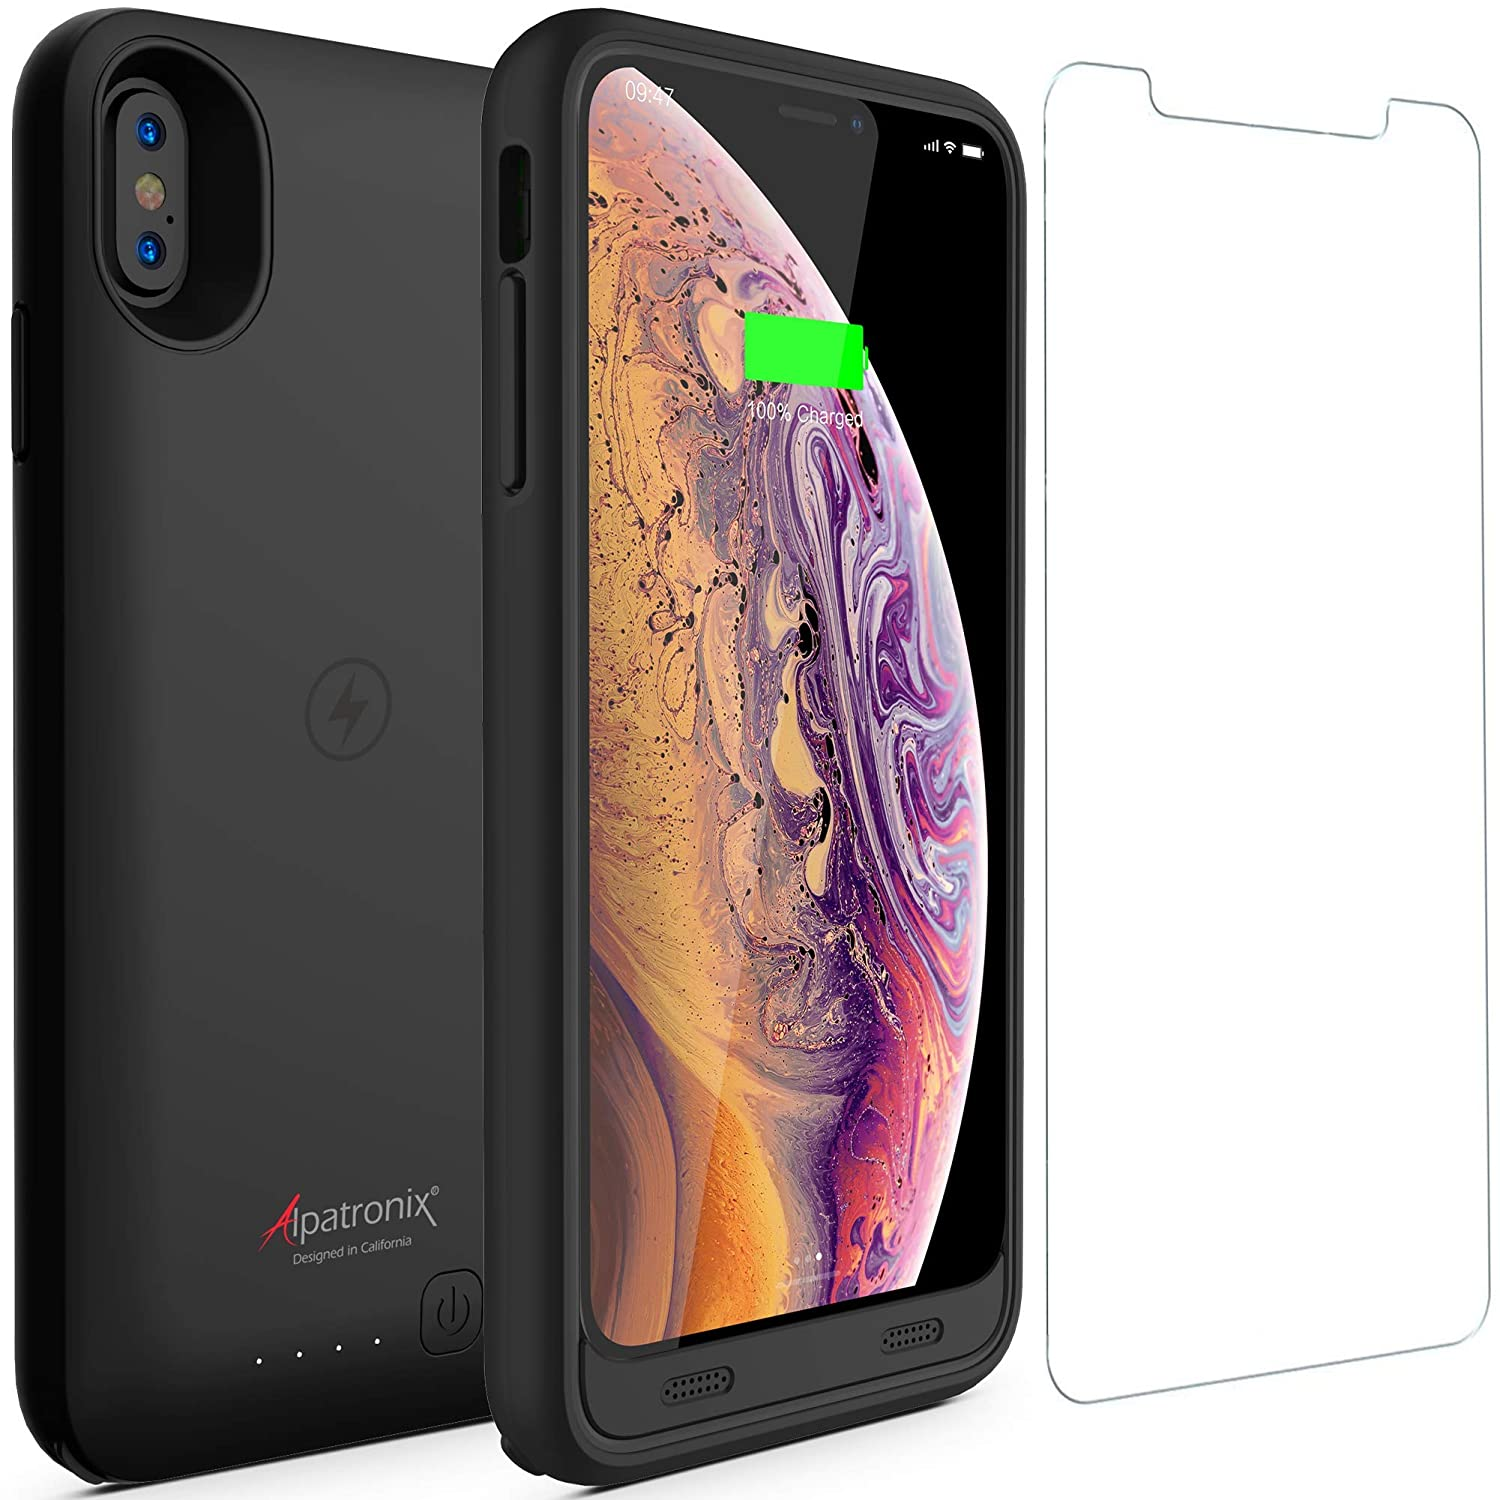 quality design 7d6b6 679e9 iPhone Xs Max Battery Case with Qi Wireless Charging Compatible, Alpatronix  BX10 Max 6.5-inch 3500mAh Rechargeable Protective Portable Charger Cover ...